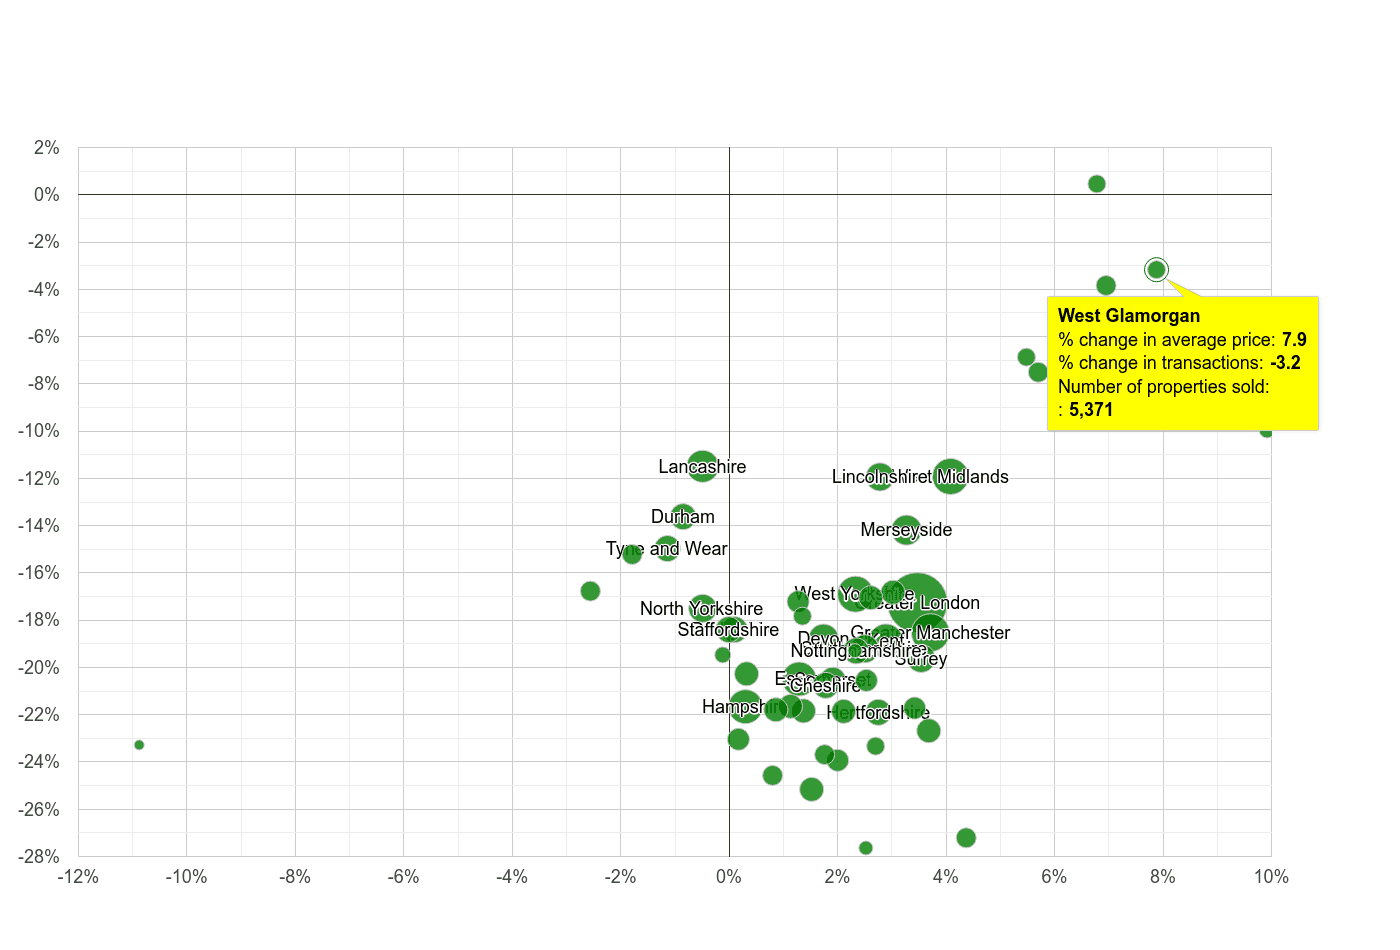 West Glamorgan property price and sales volume change relative to other counties